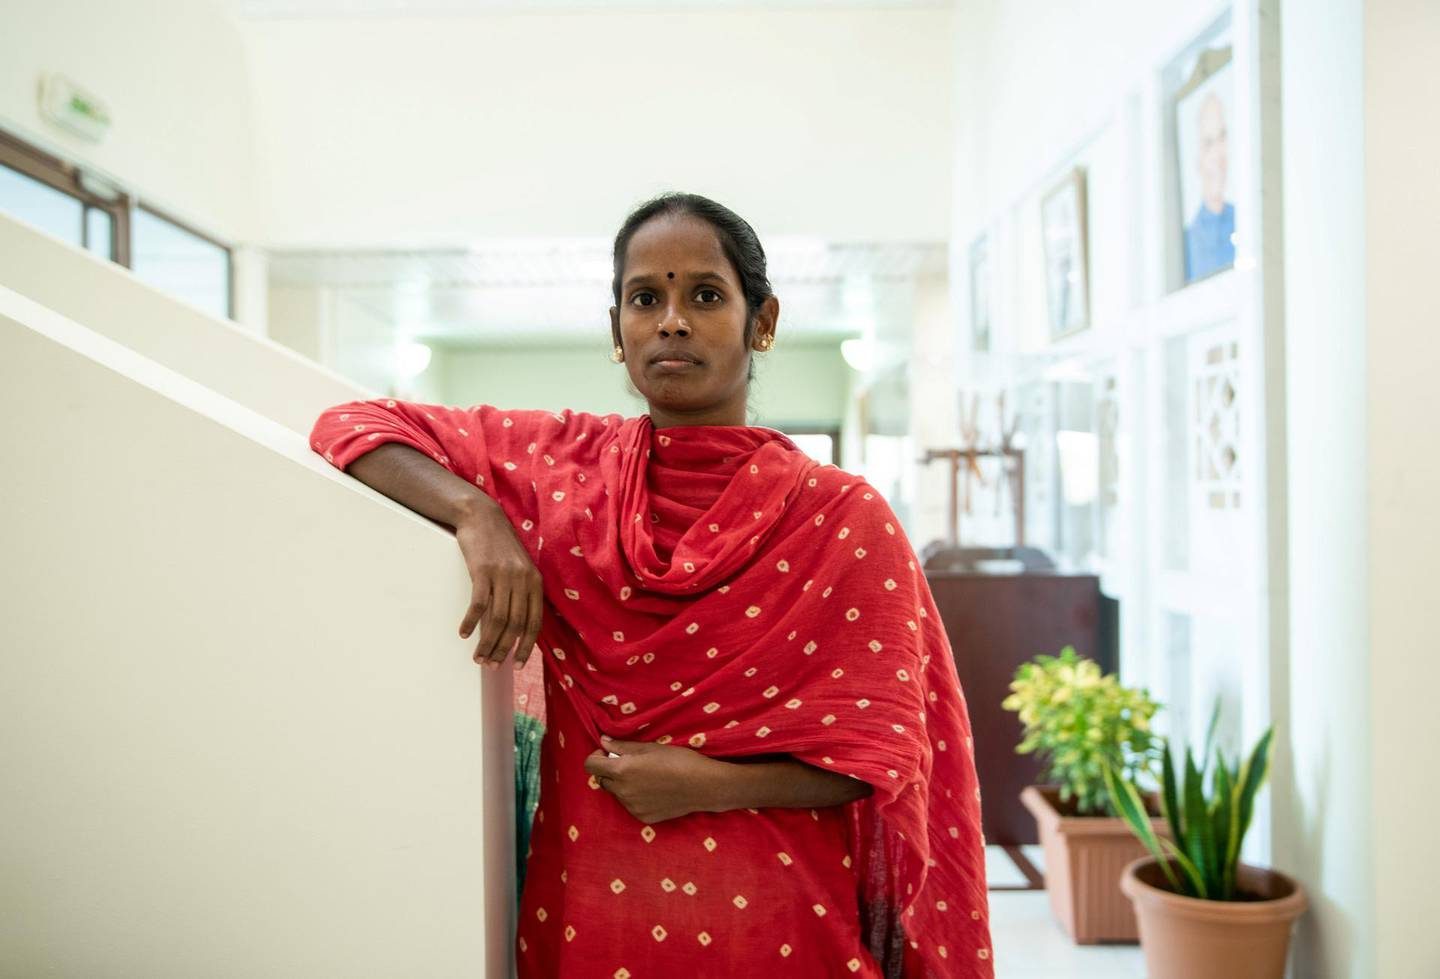 Abu Dhabi, United Arab Emirates, July 2, 2019.  This is for a runaway maids story. Veerammal Radhakishnanand ran away from an agent in Ajman and asked for help at the indian embassy.Victor Besa/The NationalSection:  NAReporter:  Ramola Talwar